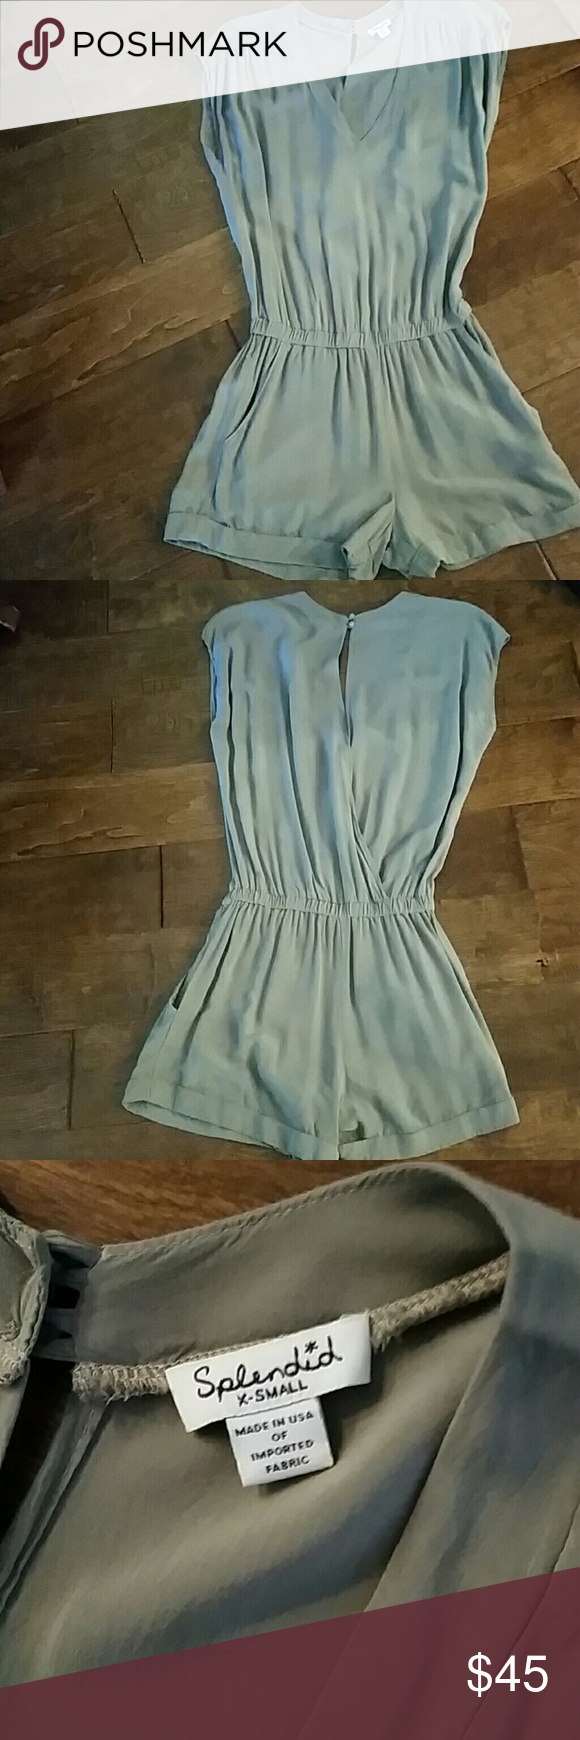 Splendid,  romper Very flattering, perfect for summer. Can be dressed up or down. Light army green color romper 100% rayon. splendid  Other